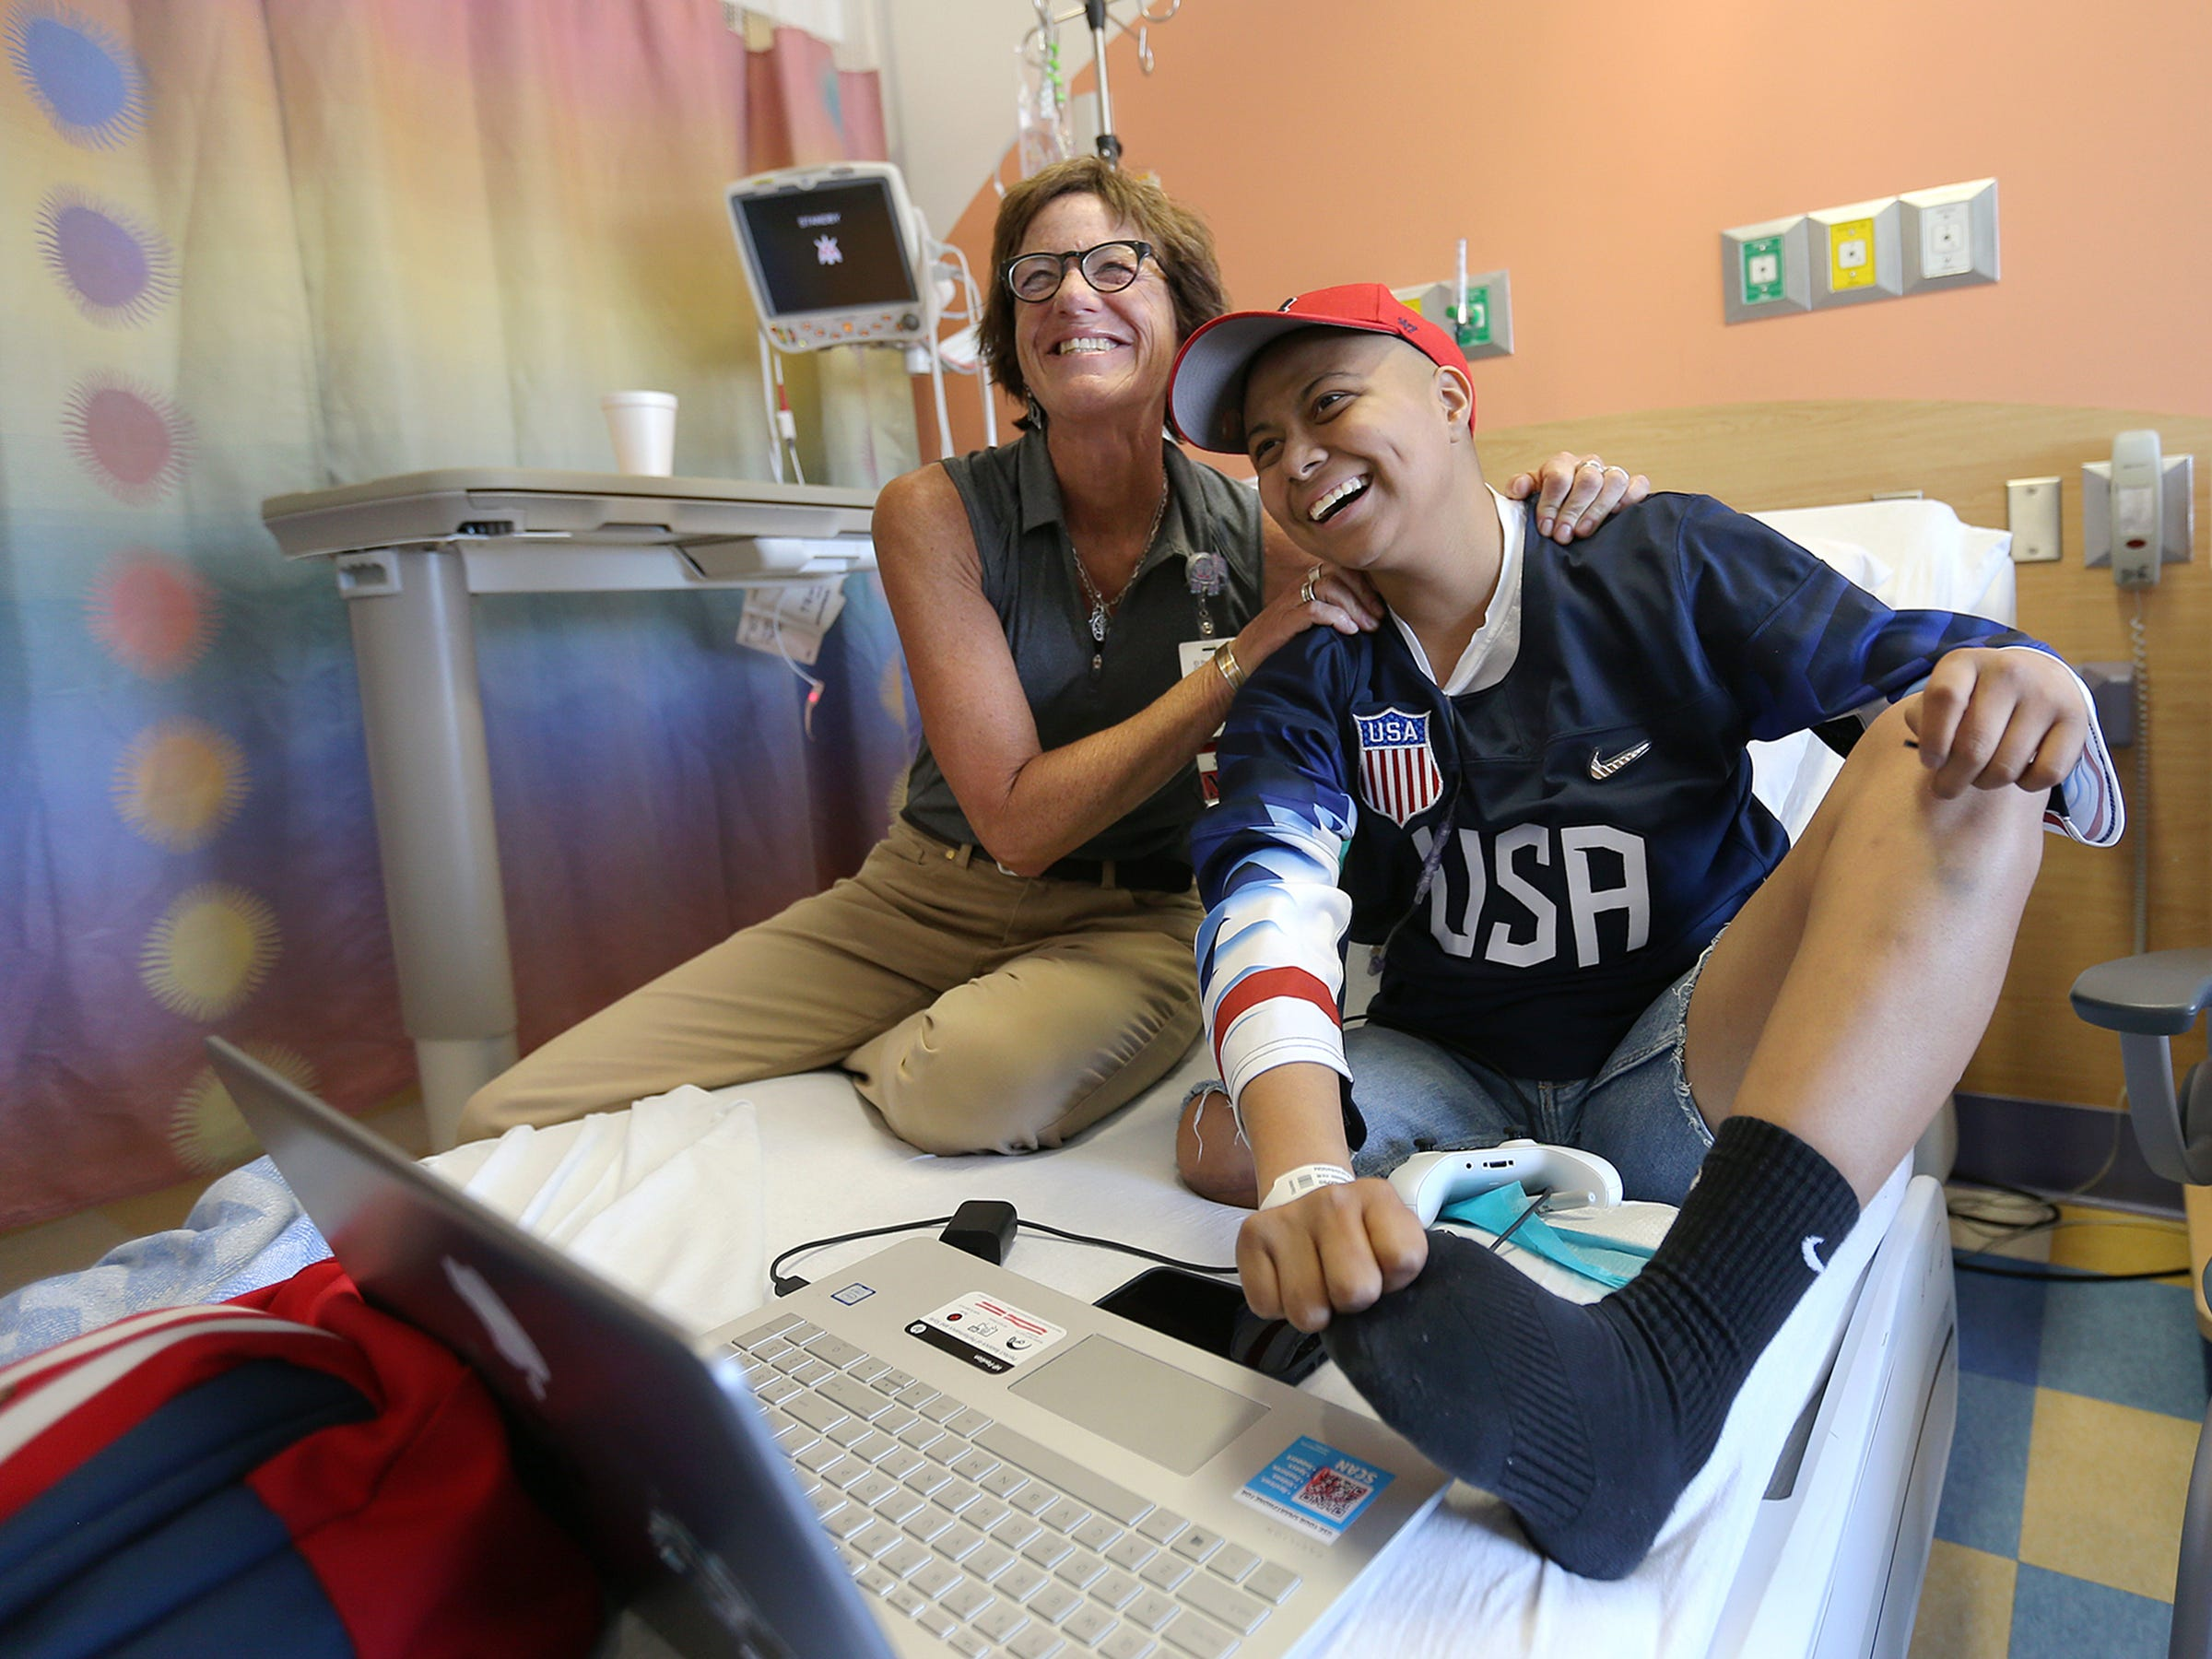 Del Valle soccer player Janet Rodriguez's strength during cancer fight inspires others | El Paso Times